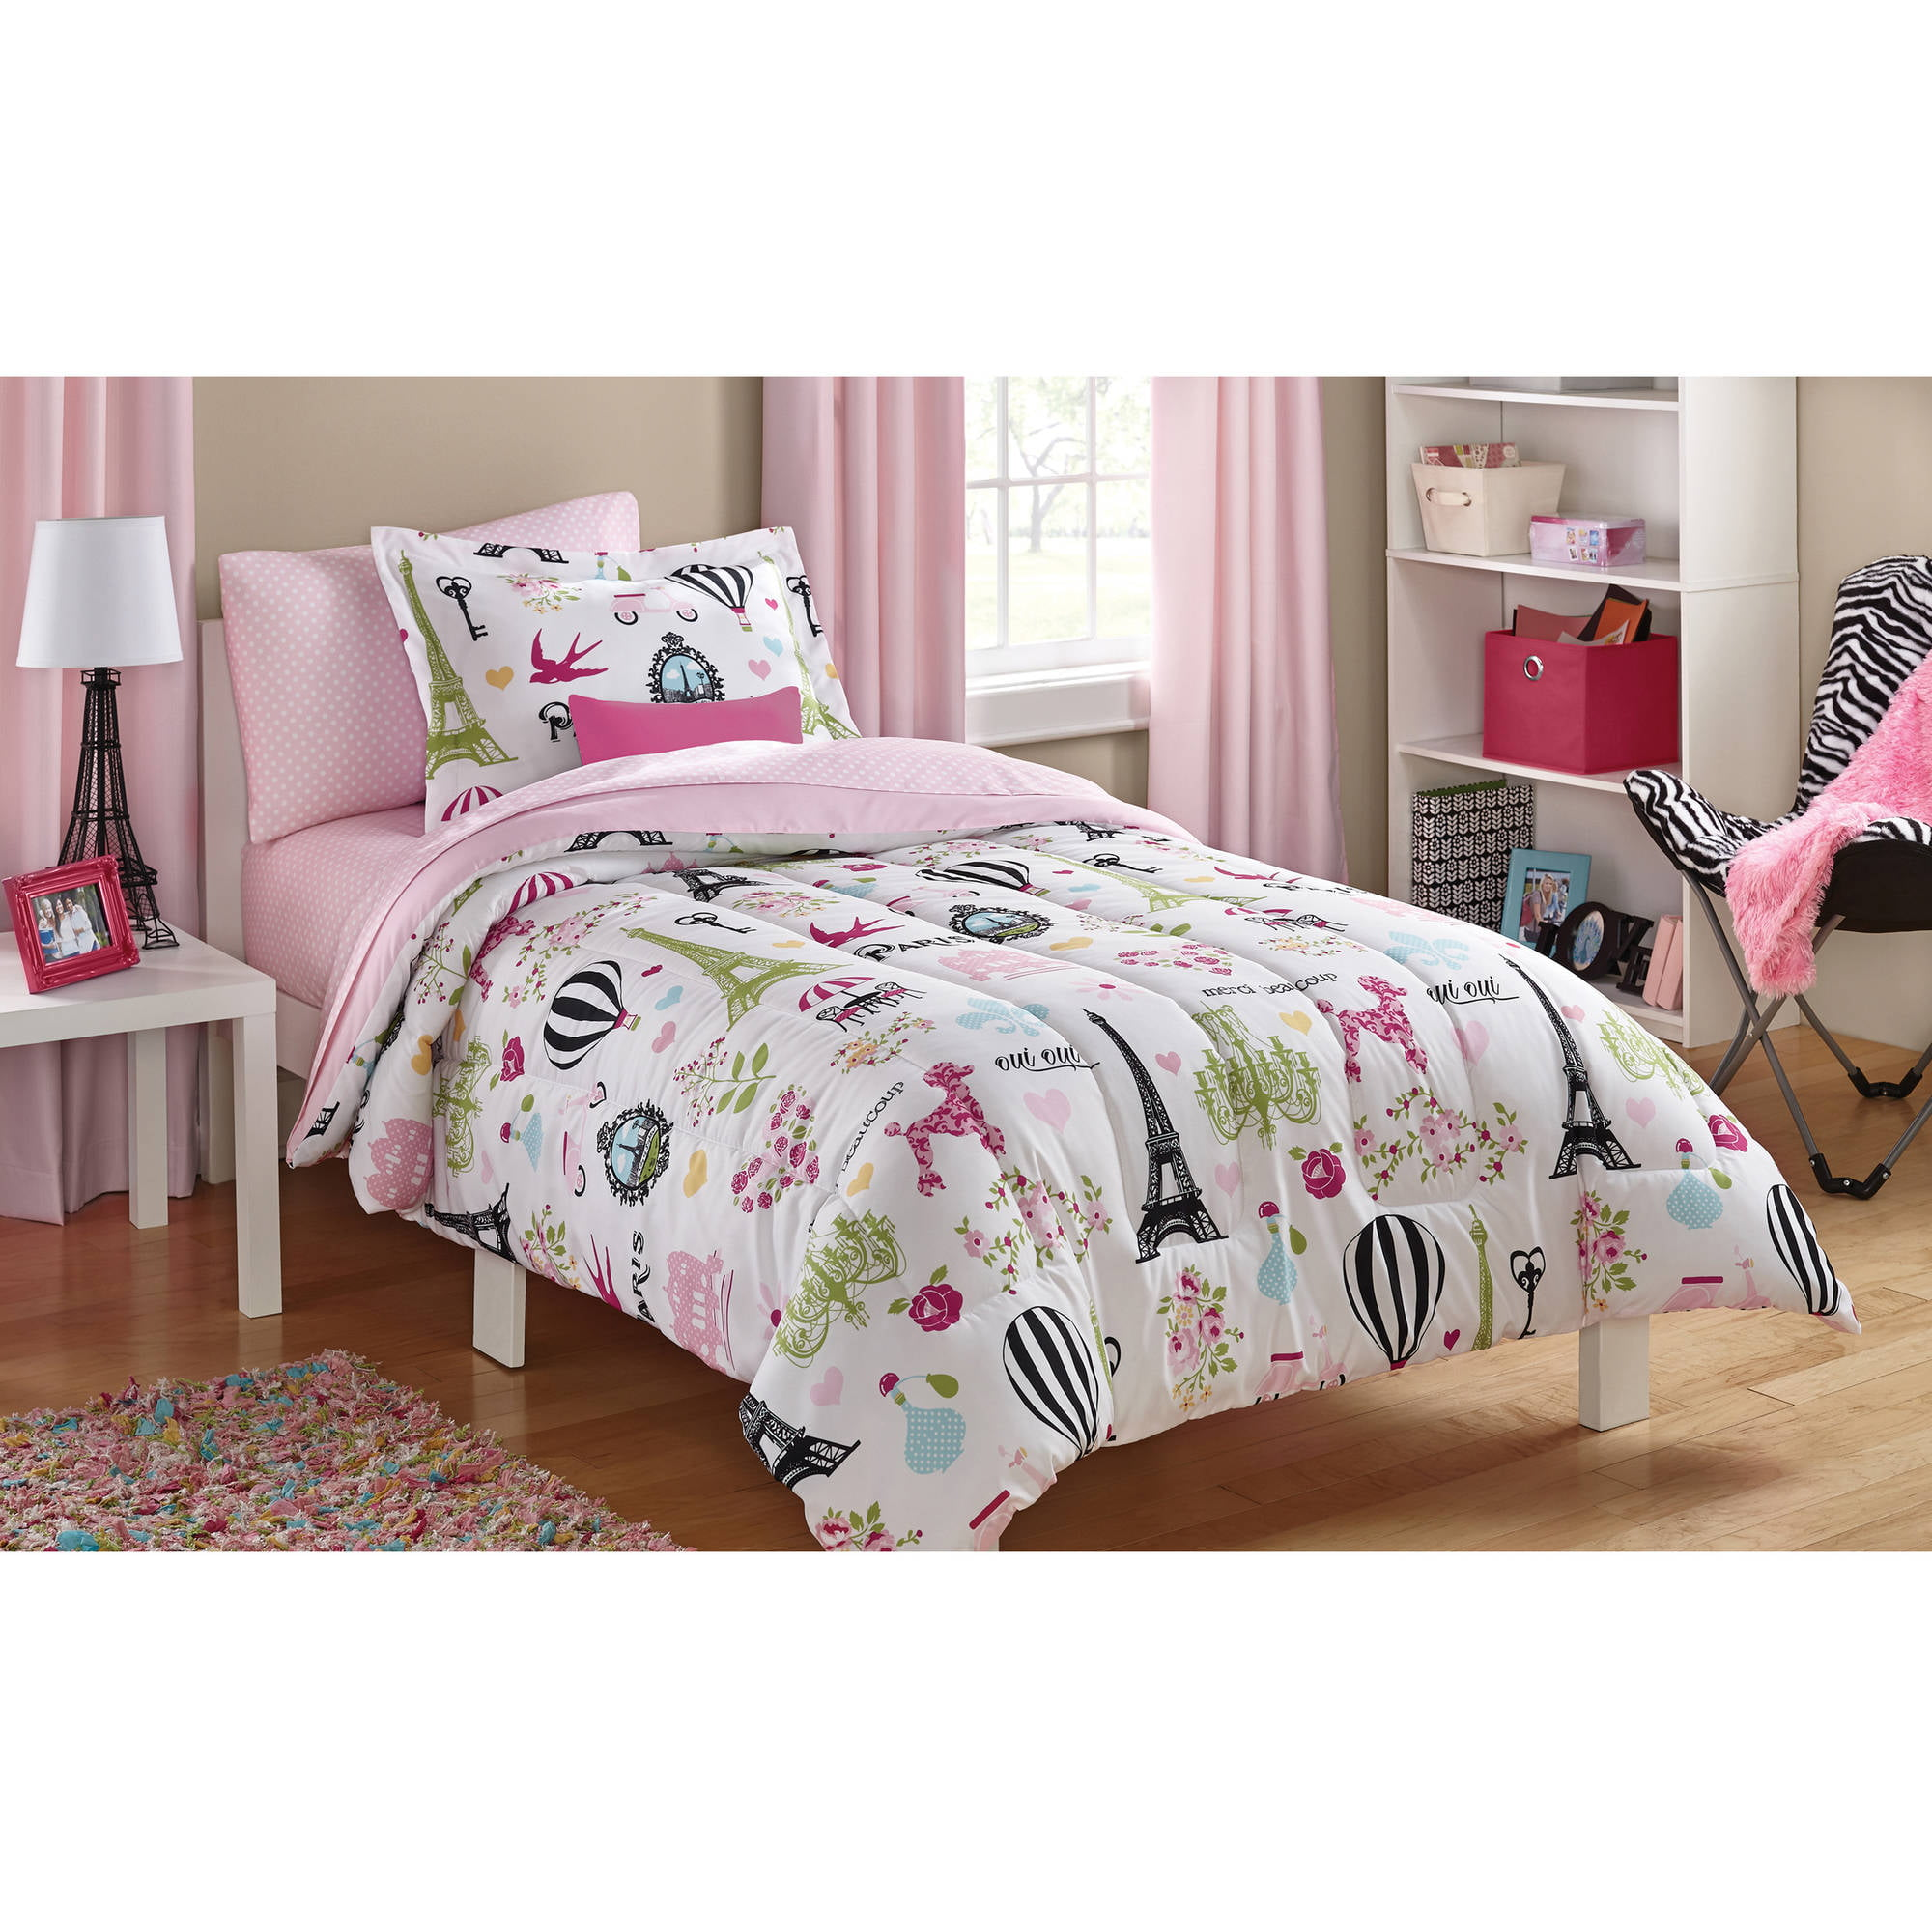 Mainstays Kids Paris Bed in a Bag Bedding Set - Walmart.com